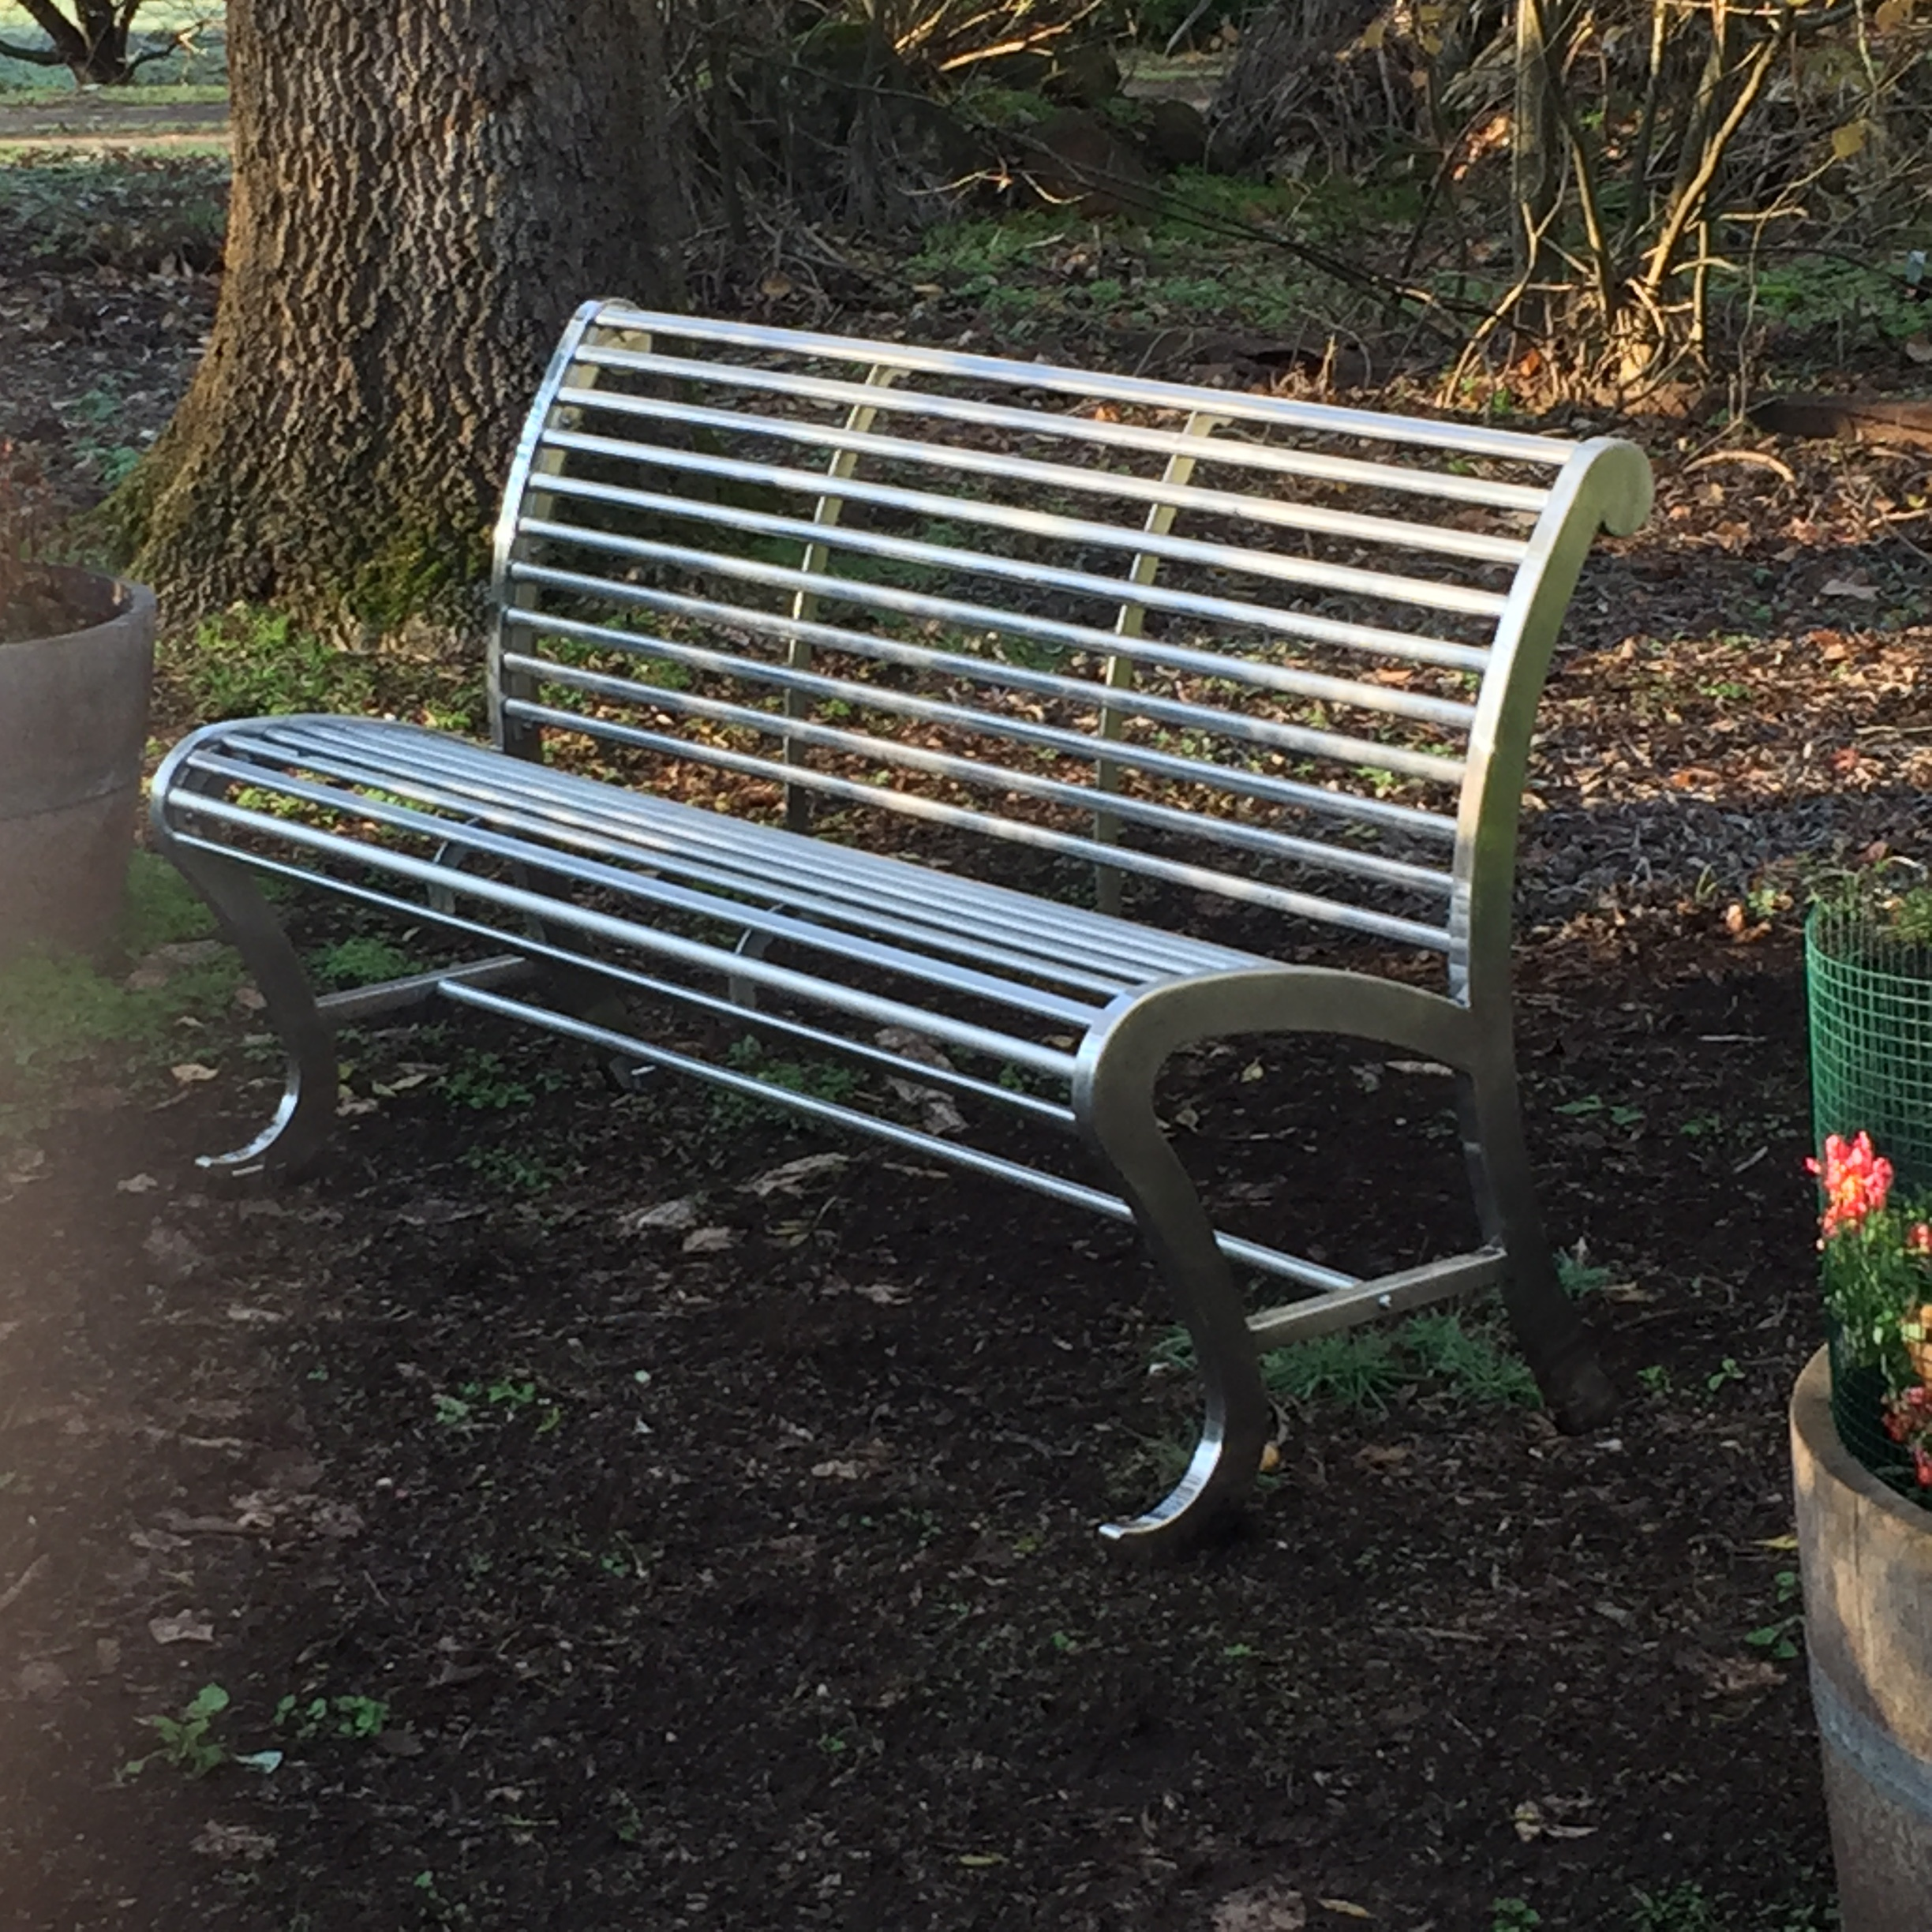 stainless steel park benches 1550mm l x 651 mm w x 893 mm h | eco